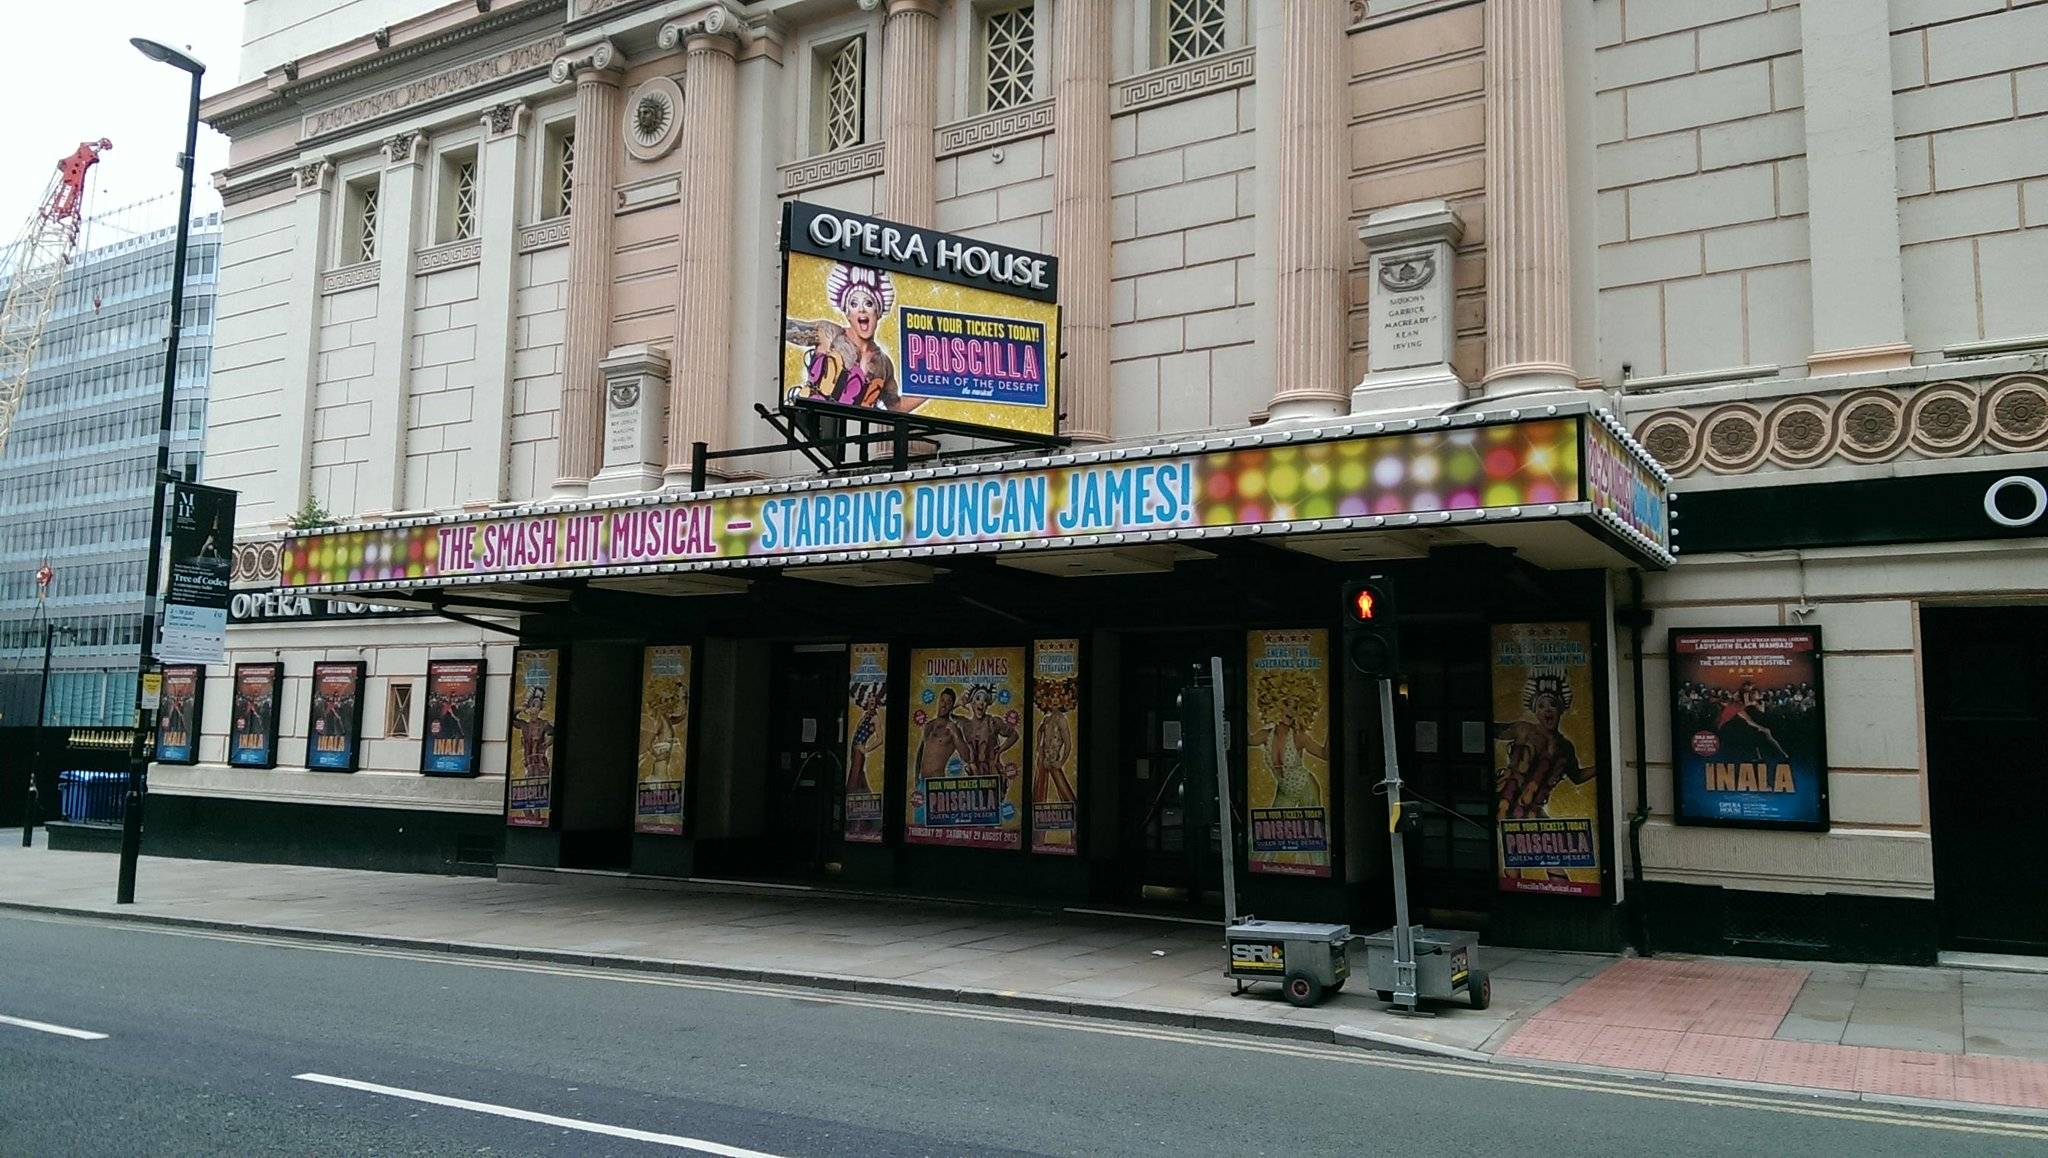 RT @priscillabus: 3. Weeks. Today. First performance at @PalaceAndOpera 20 August 2015: http://t.co/bRNjXU6wj4 #PriscillaTour http://t.co/o…